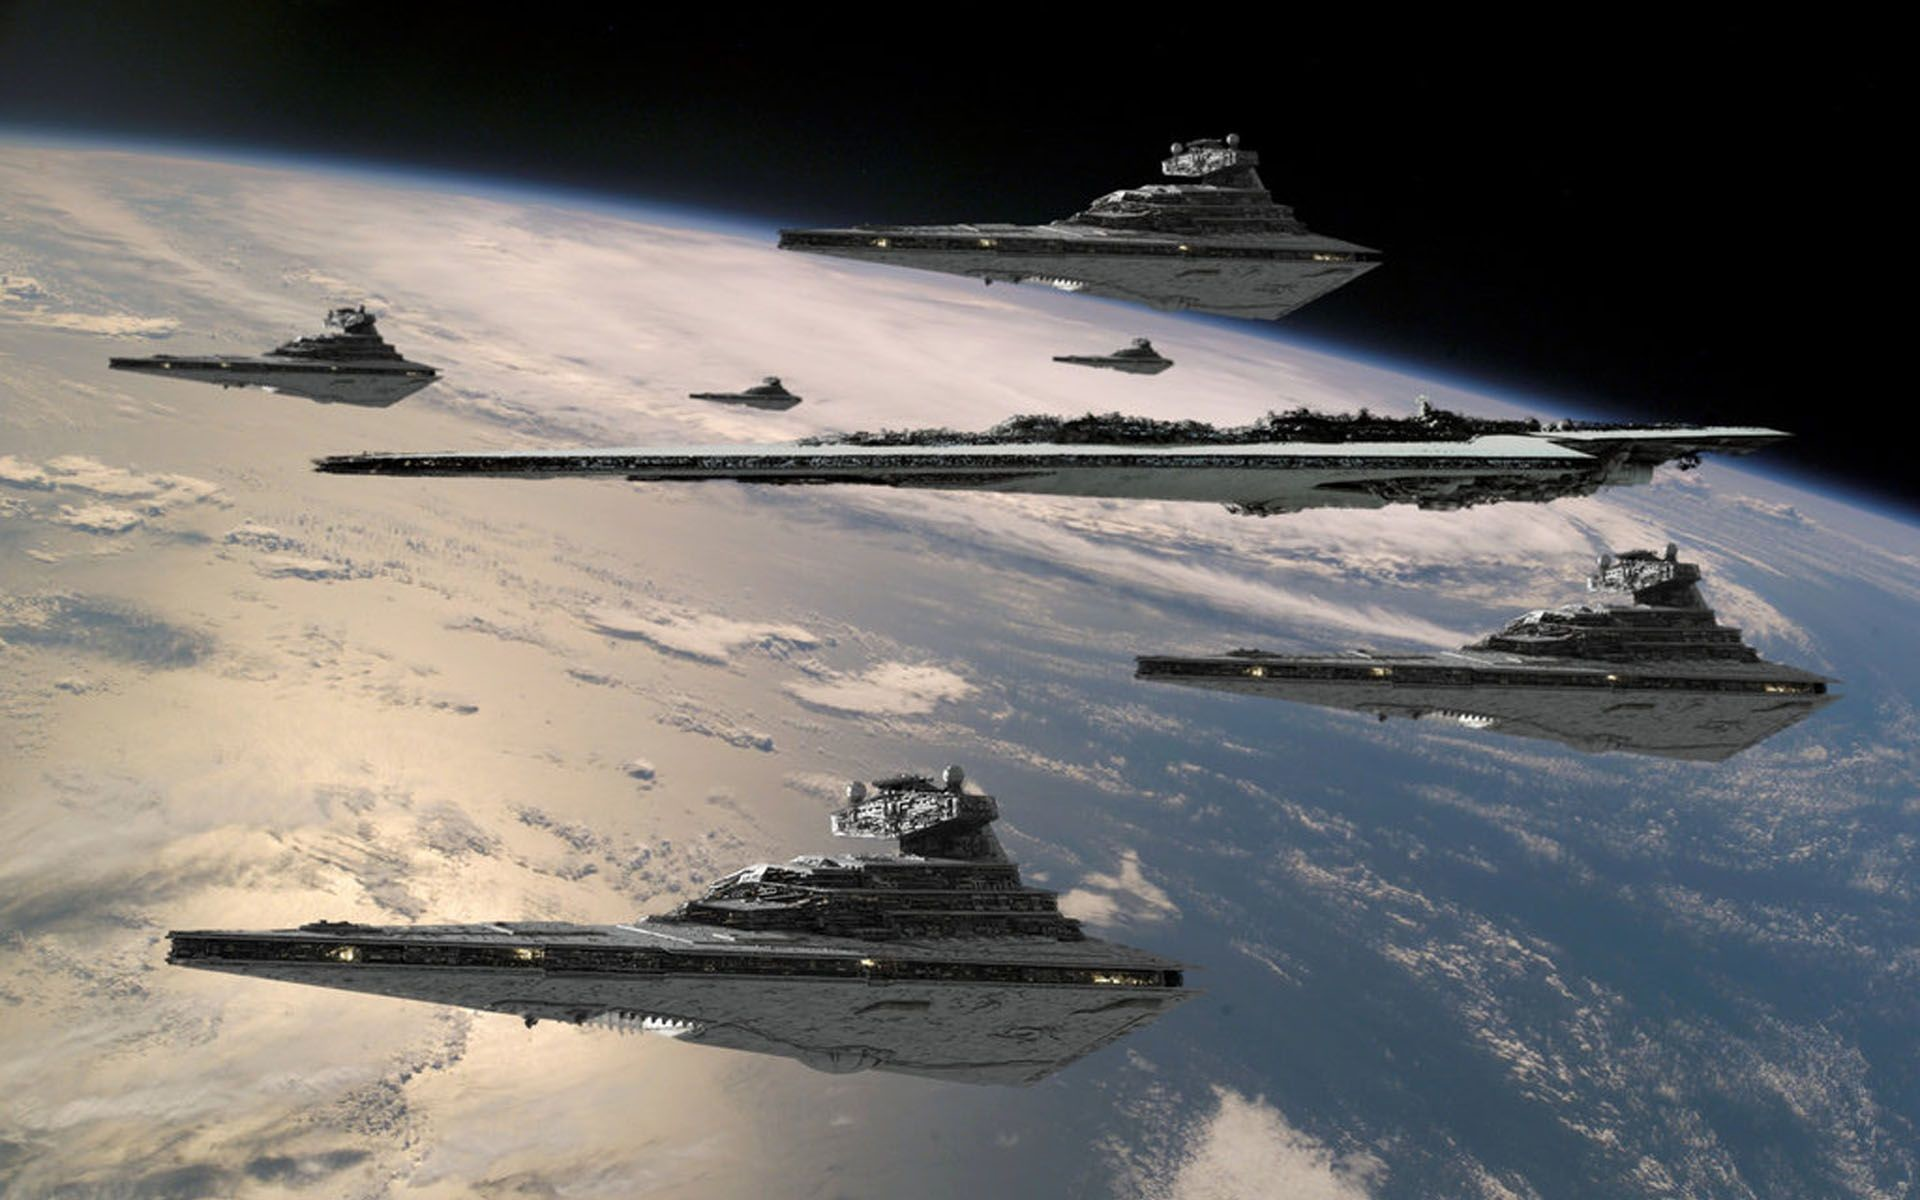 Star Wars Space Backgrounds – Wallpaper Cave